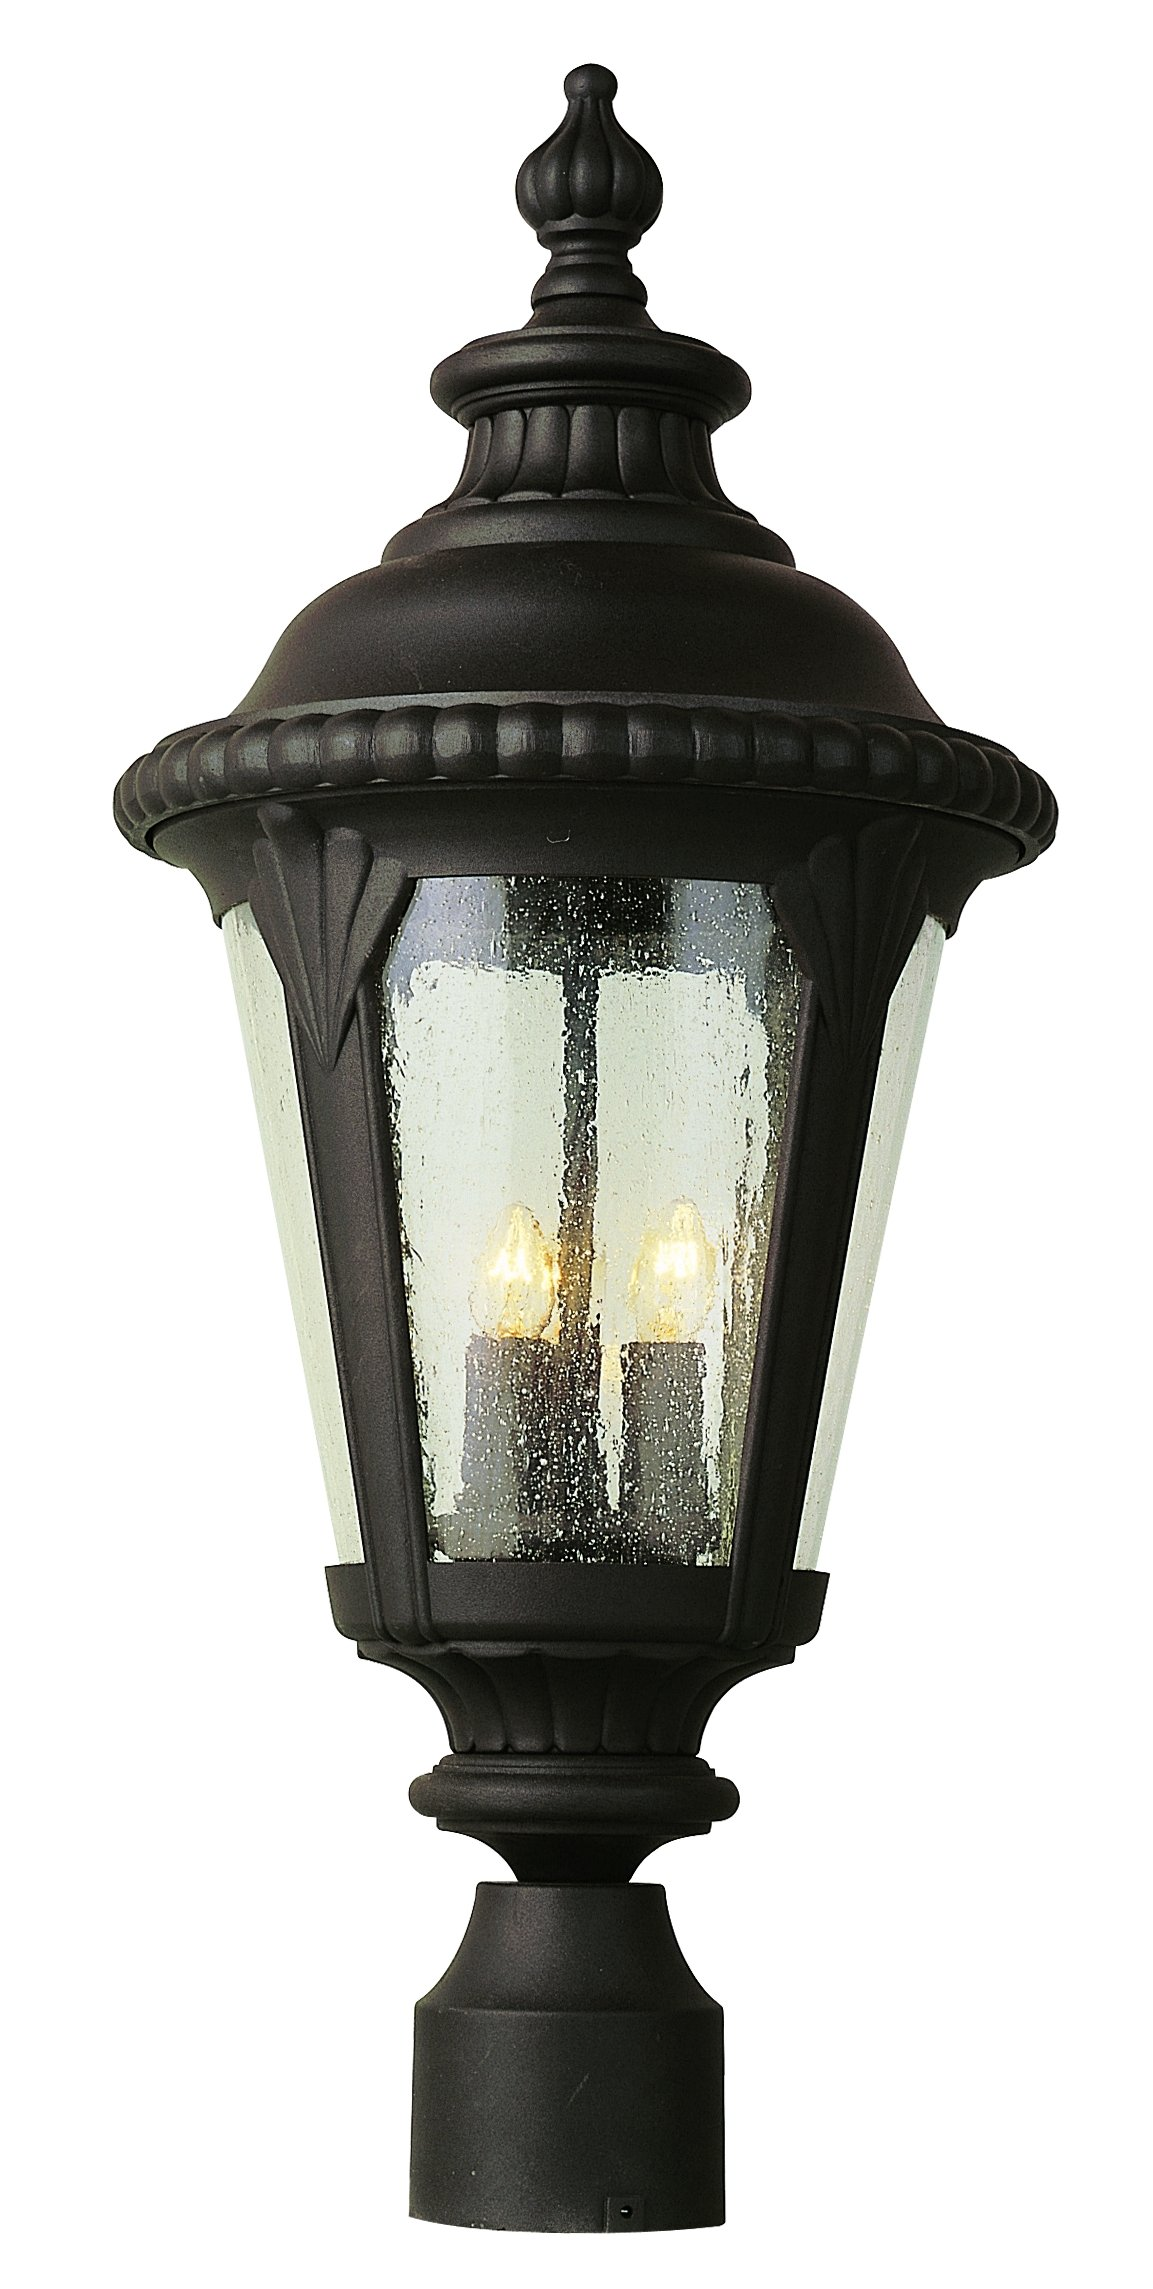 Trans Globe Lighting 5047 BK Outdoor Commons 24'' Postmount Lantern, Black